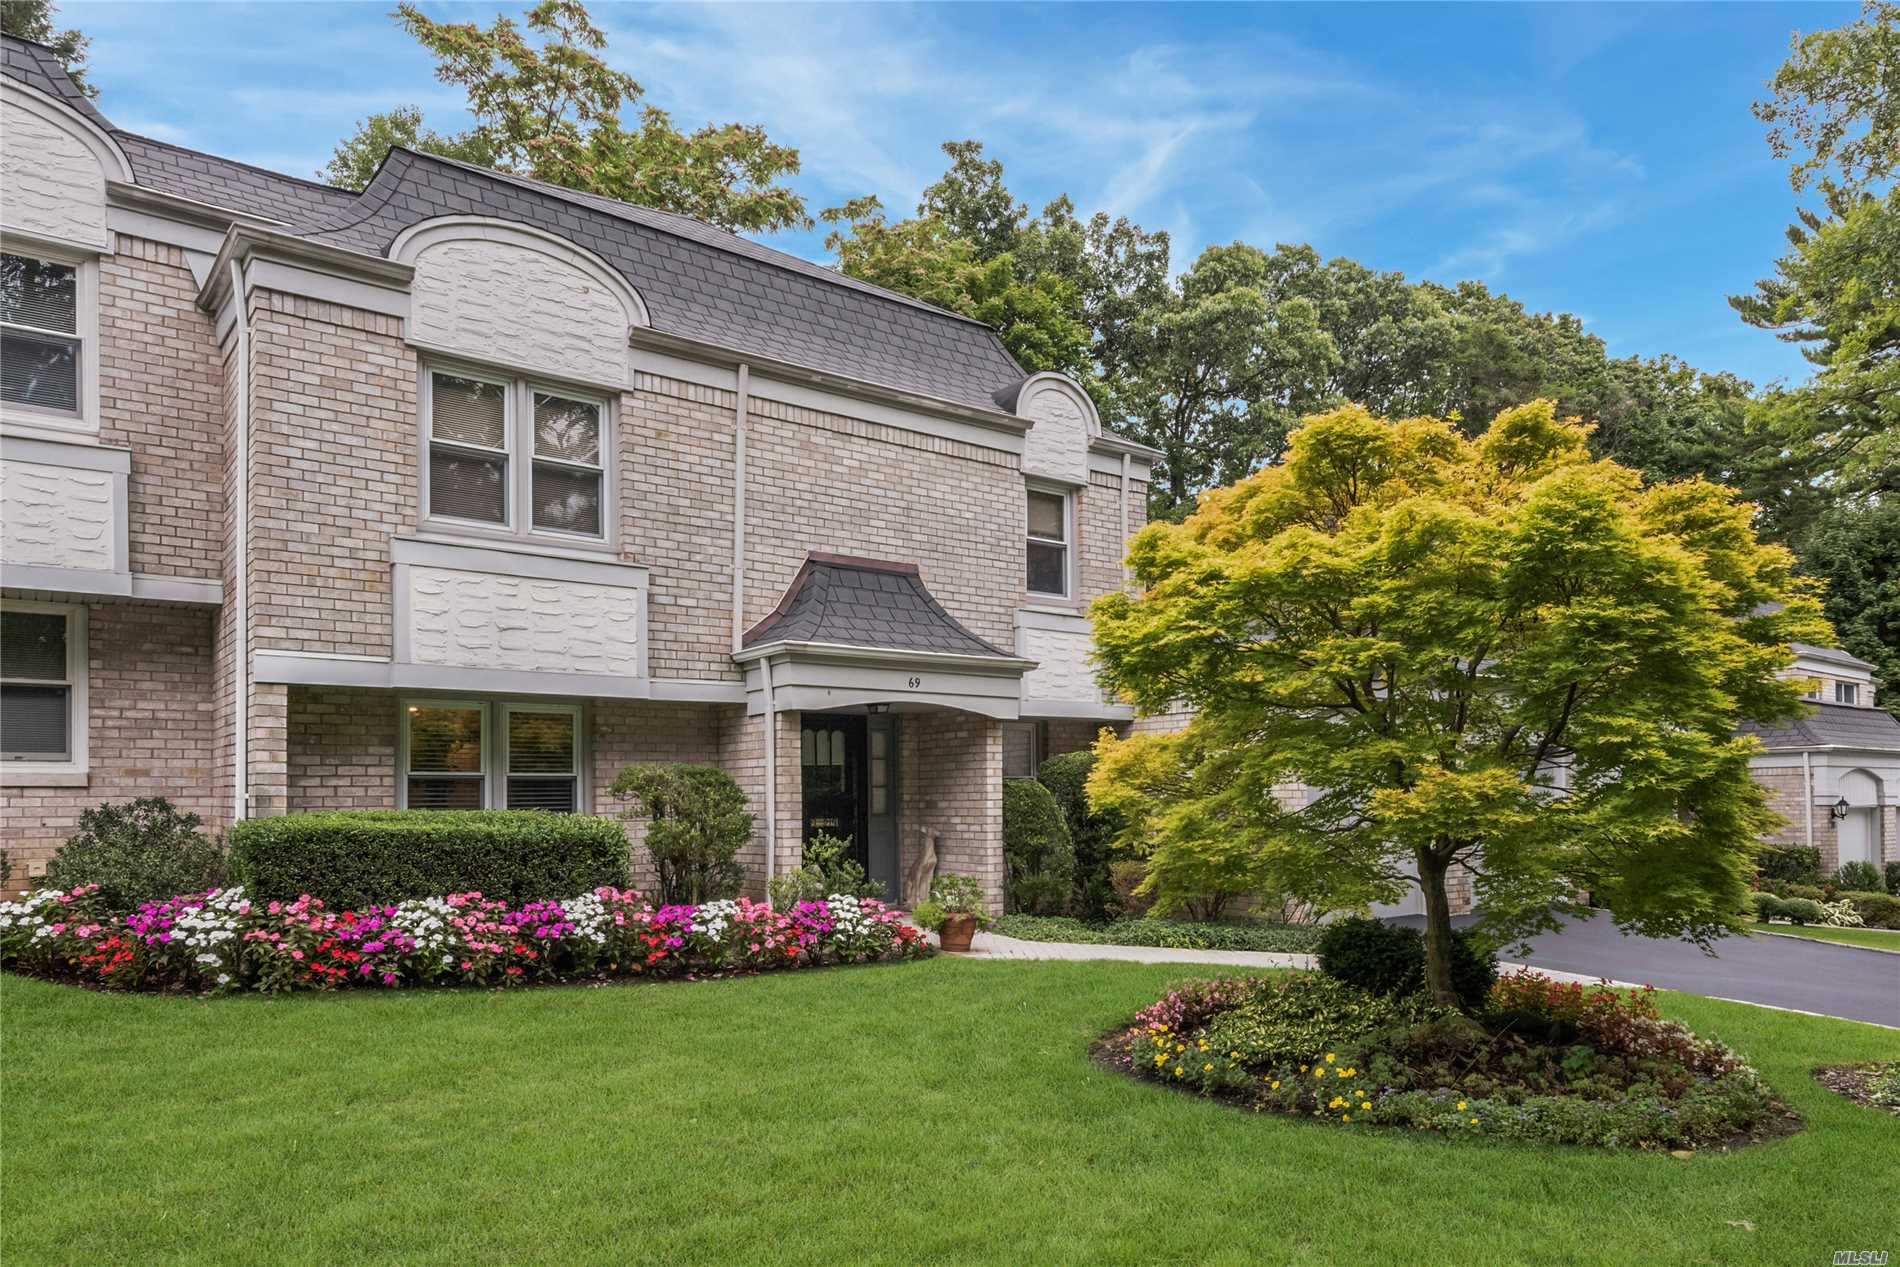 South Facing Entry, 3 Bedroom 2.5 Full Bath Brick Condo At The Greens W/ Master Suite On Main Floor. Open Layout W/ Vaulted Ceilings, Eat In Kitchen, Bright & Airy Formal Living Room & Dining Room, Central Air, Hardwood Floors, Full Basement, 2 Car Garage, Rear Patio, Community Pool & Tennis, Pet Friendly, Manhasset Lirr Train Sticker. Close To Shopping, Restaurants, Night Life & Highways. Low Taxes